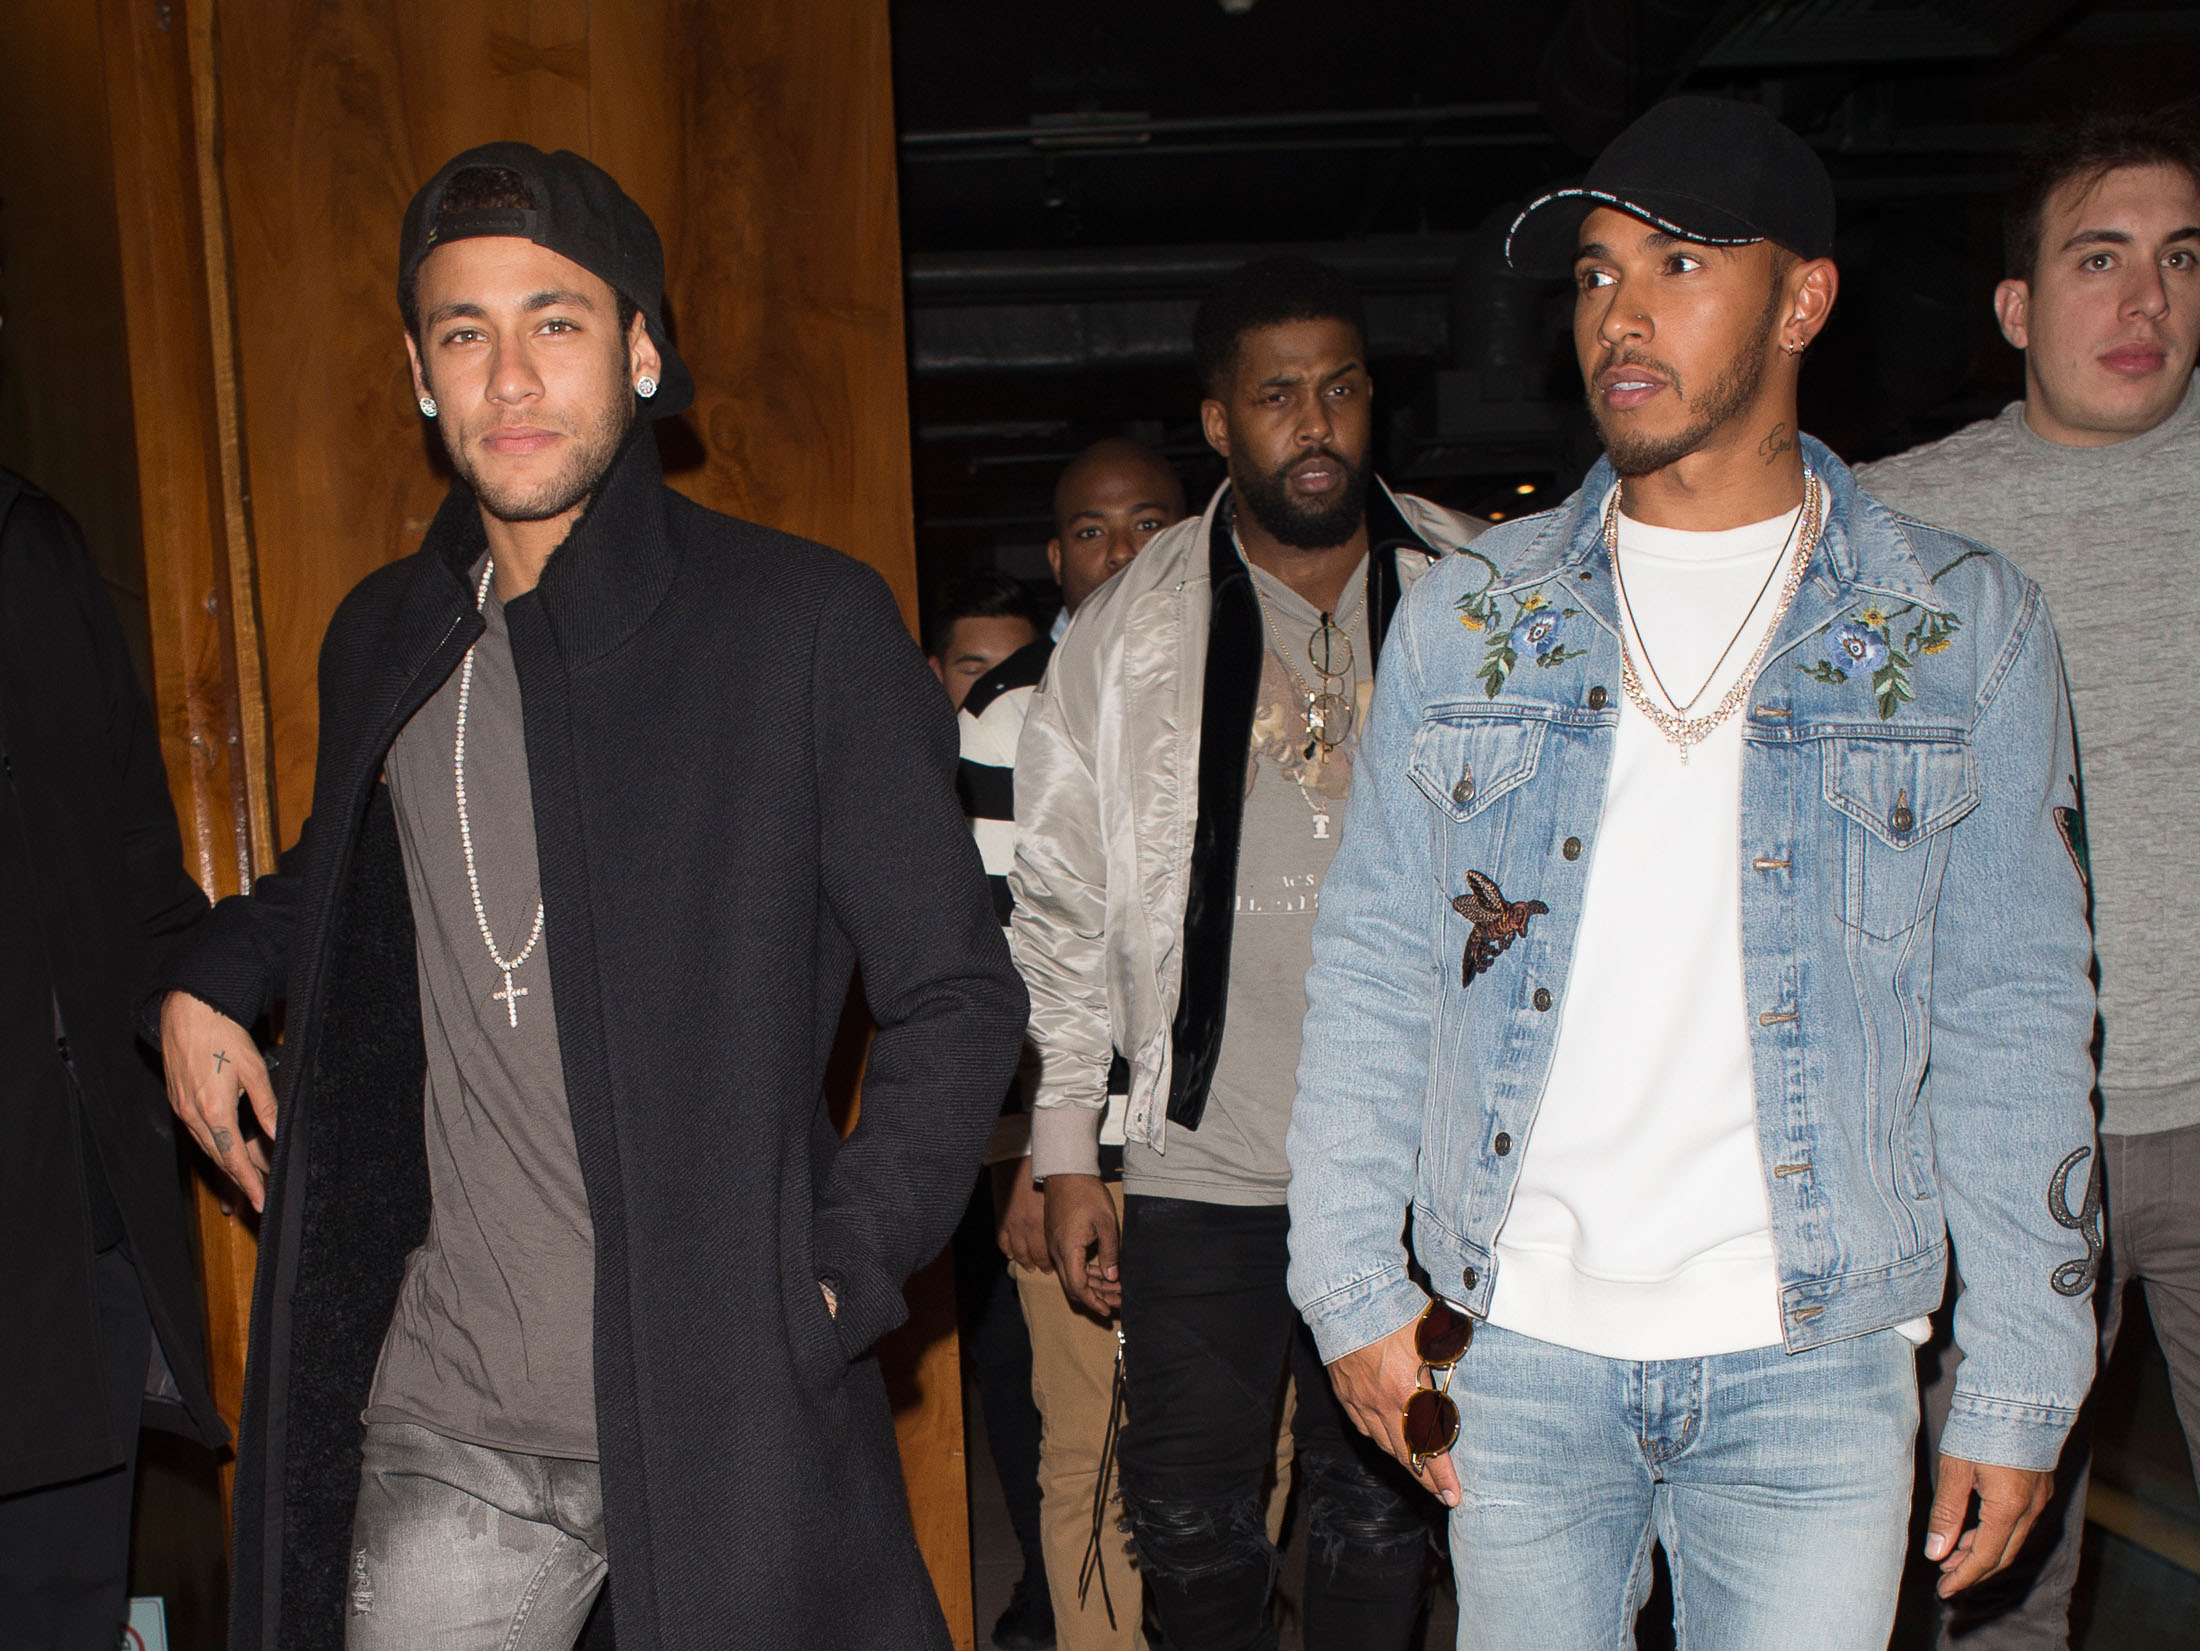 EXCLUSIVE Neymar Meets Up With Lewis Hamilton For Dinner During His Time Off In London